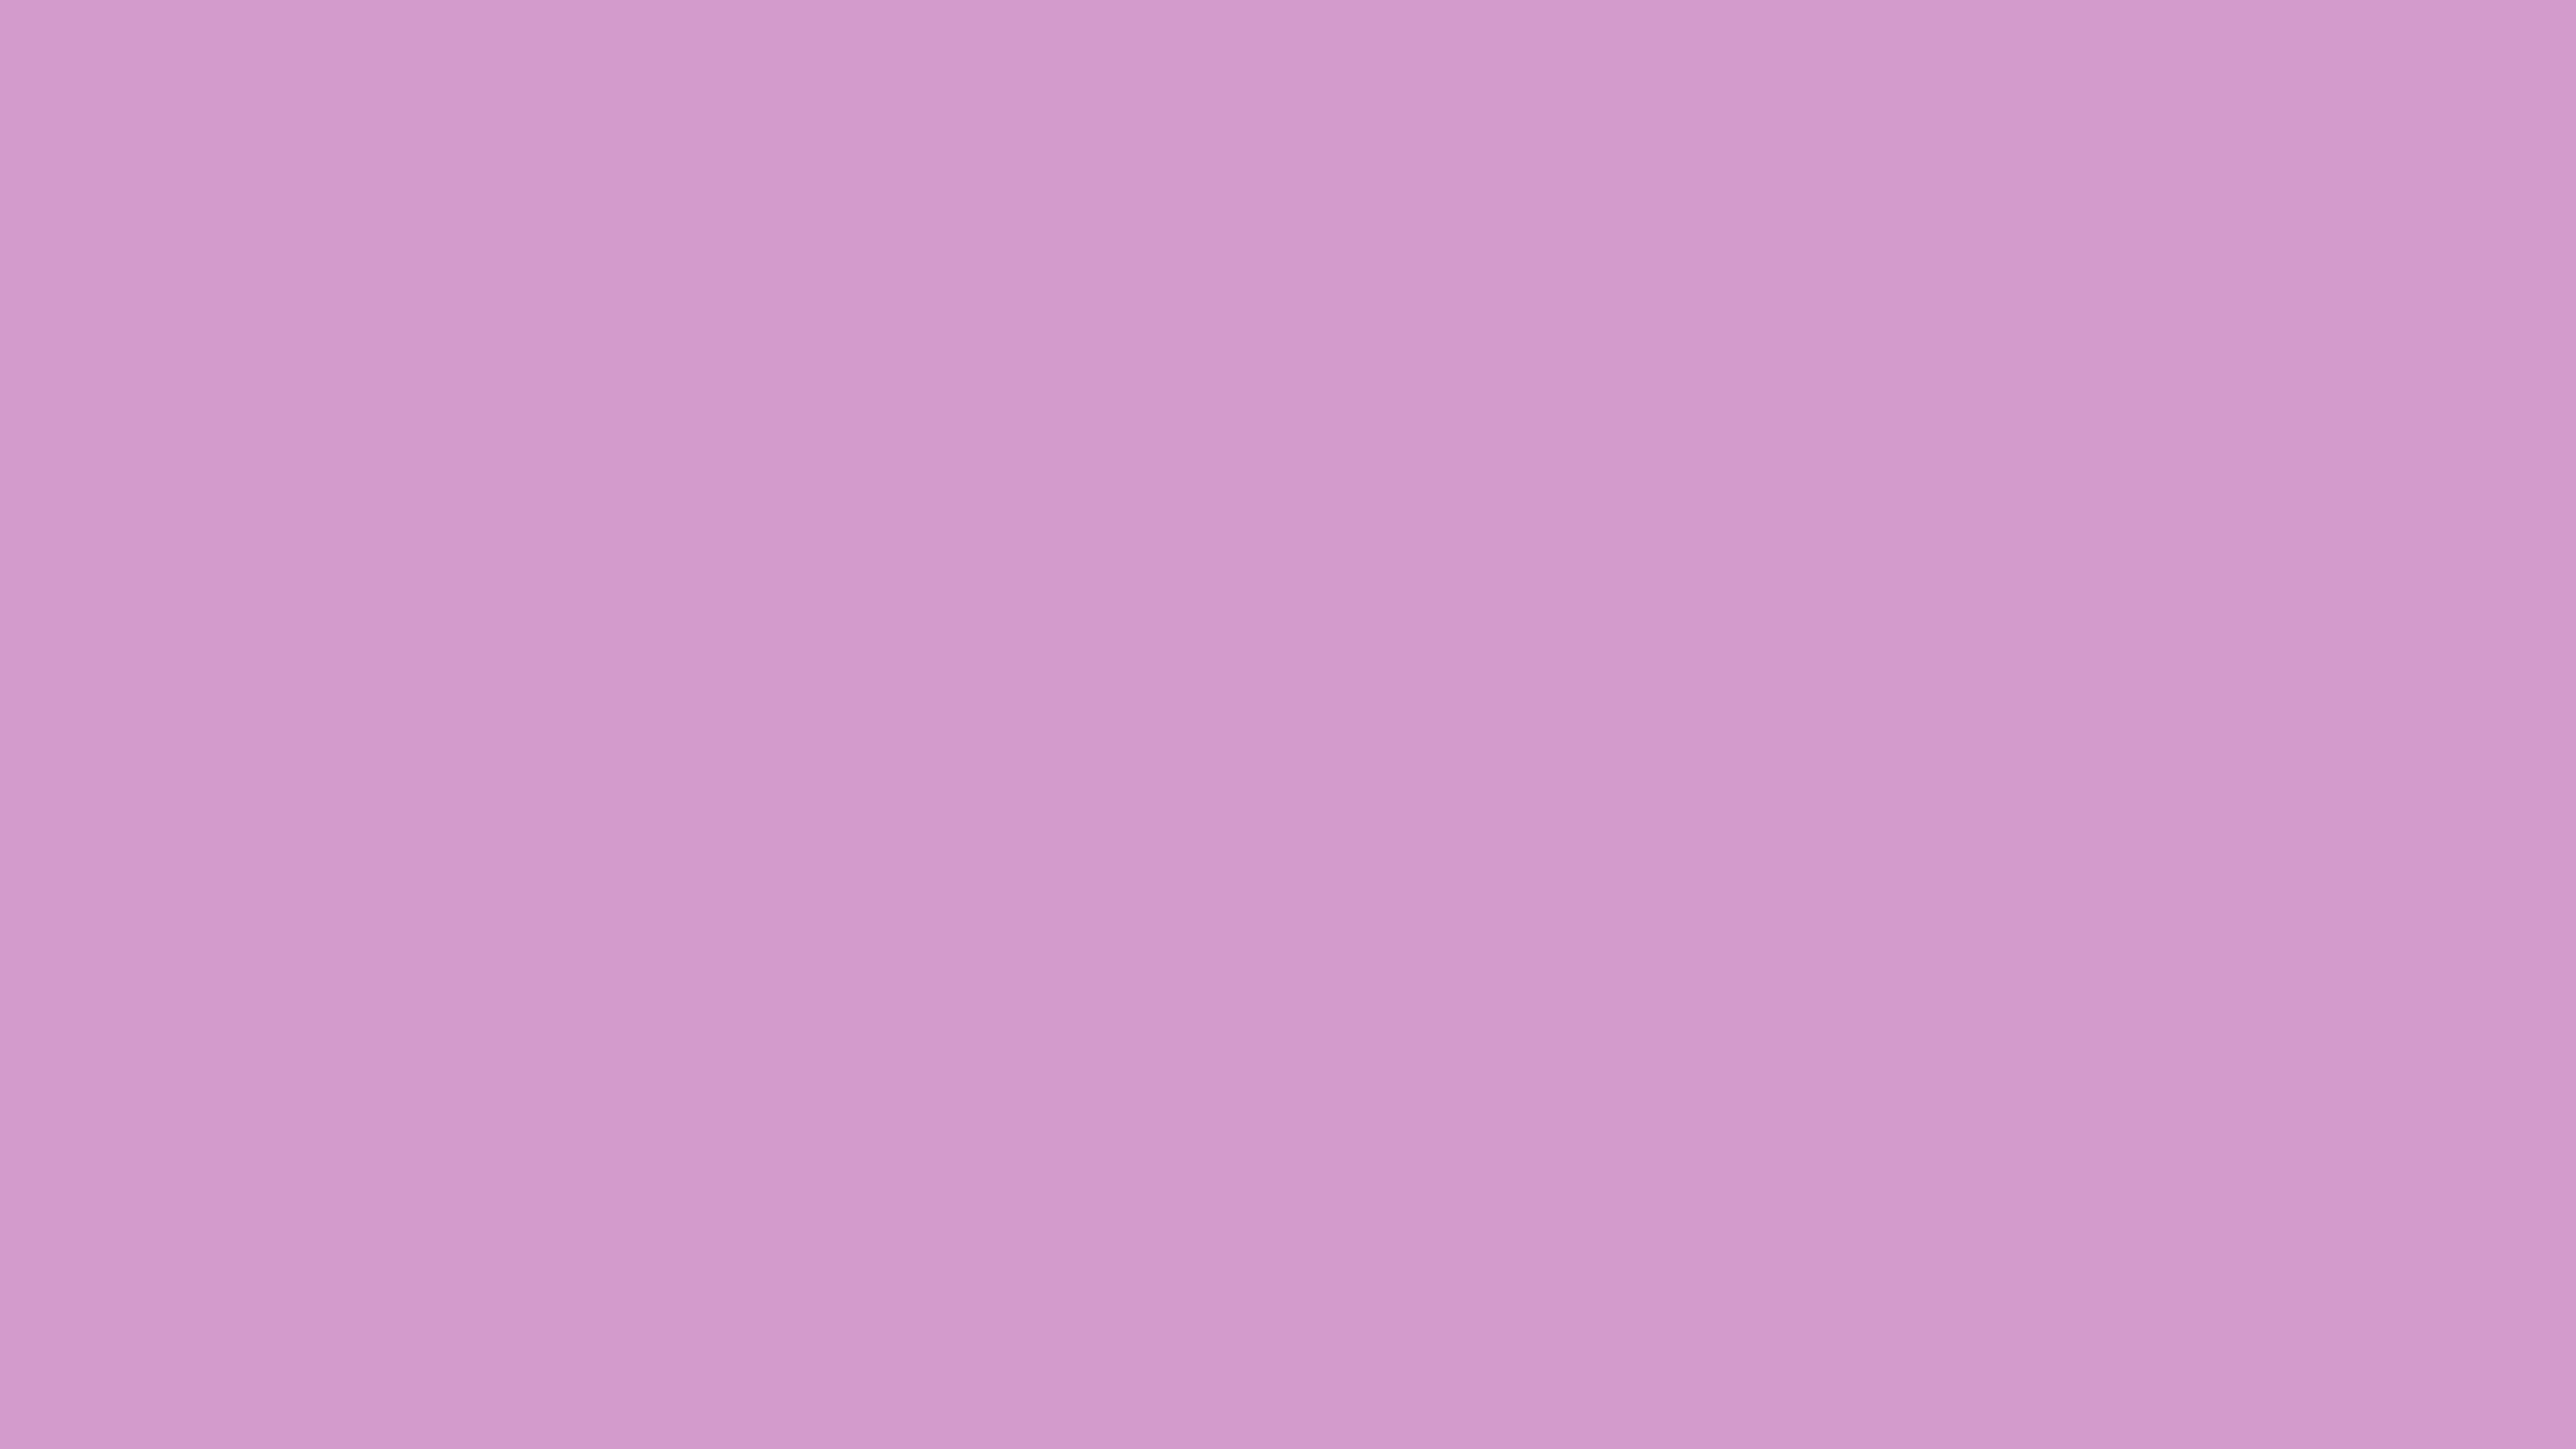 5120x2880 Light Medium Orchid Solid Color Background